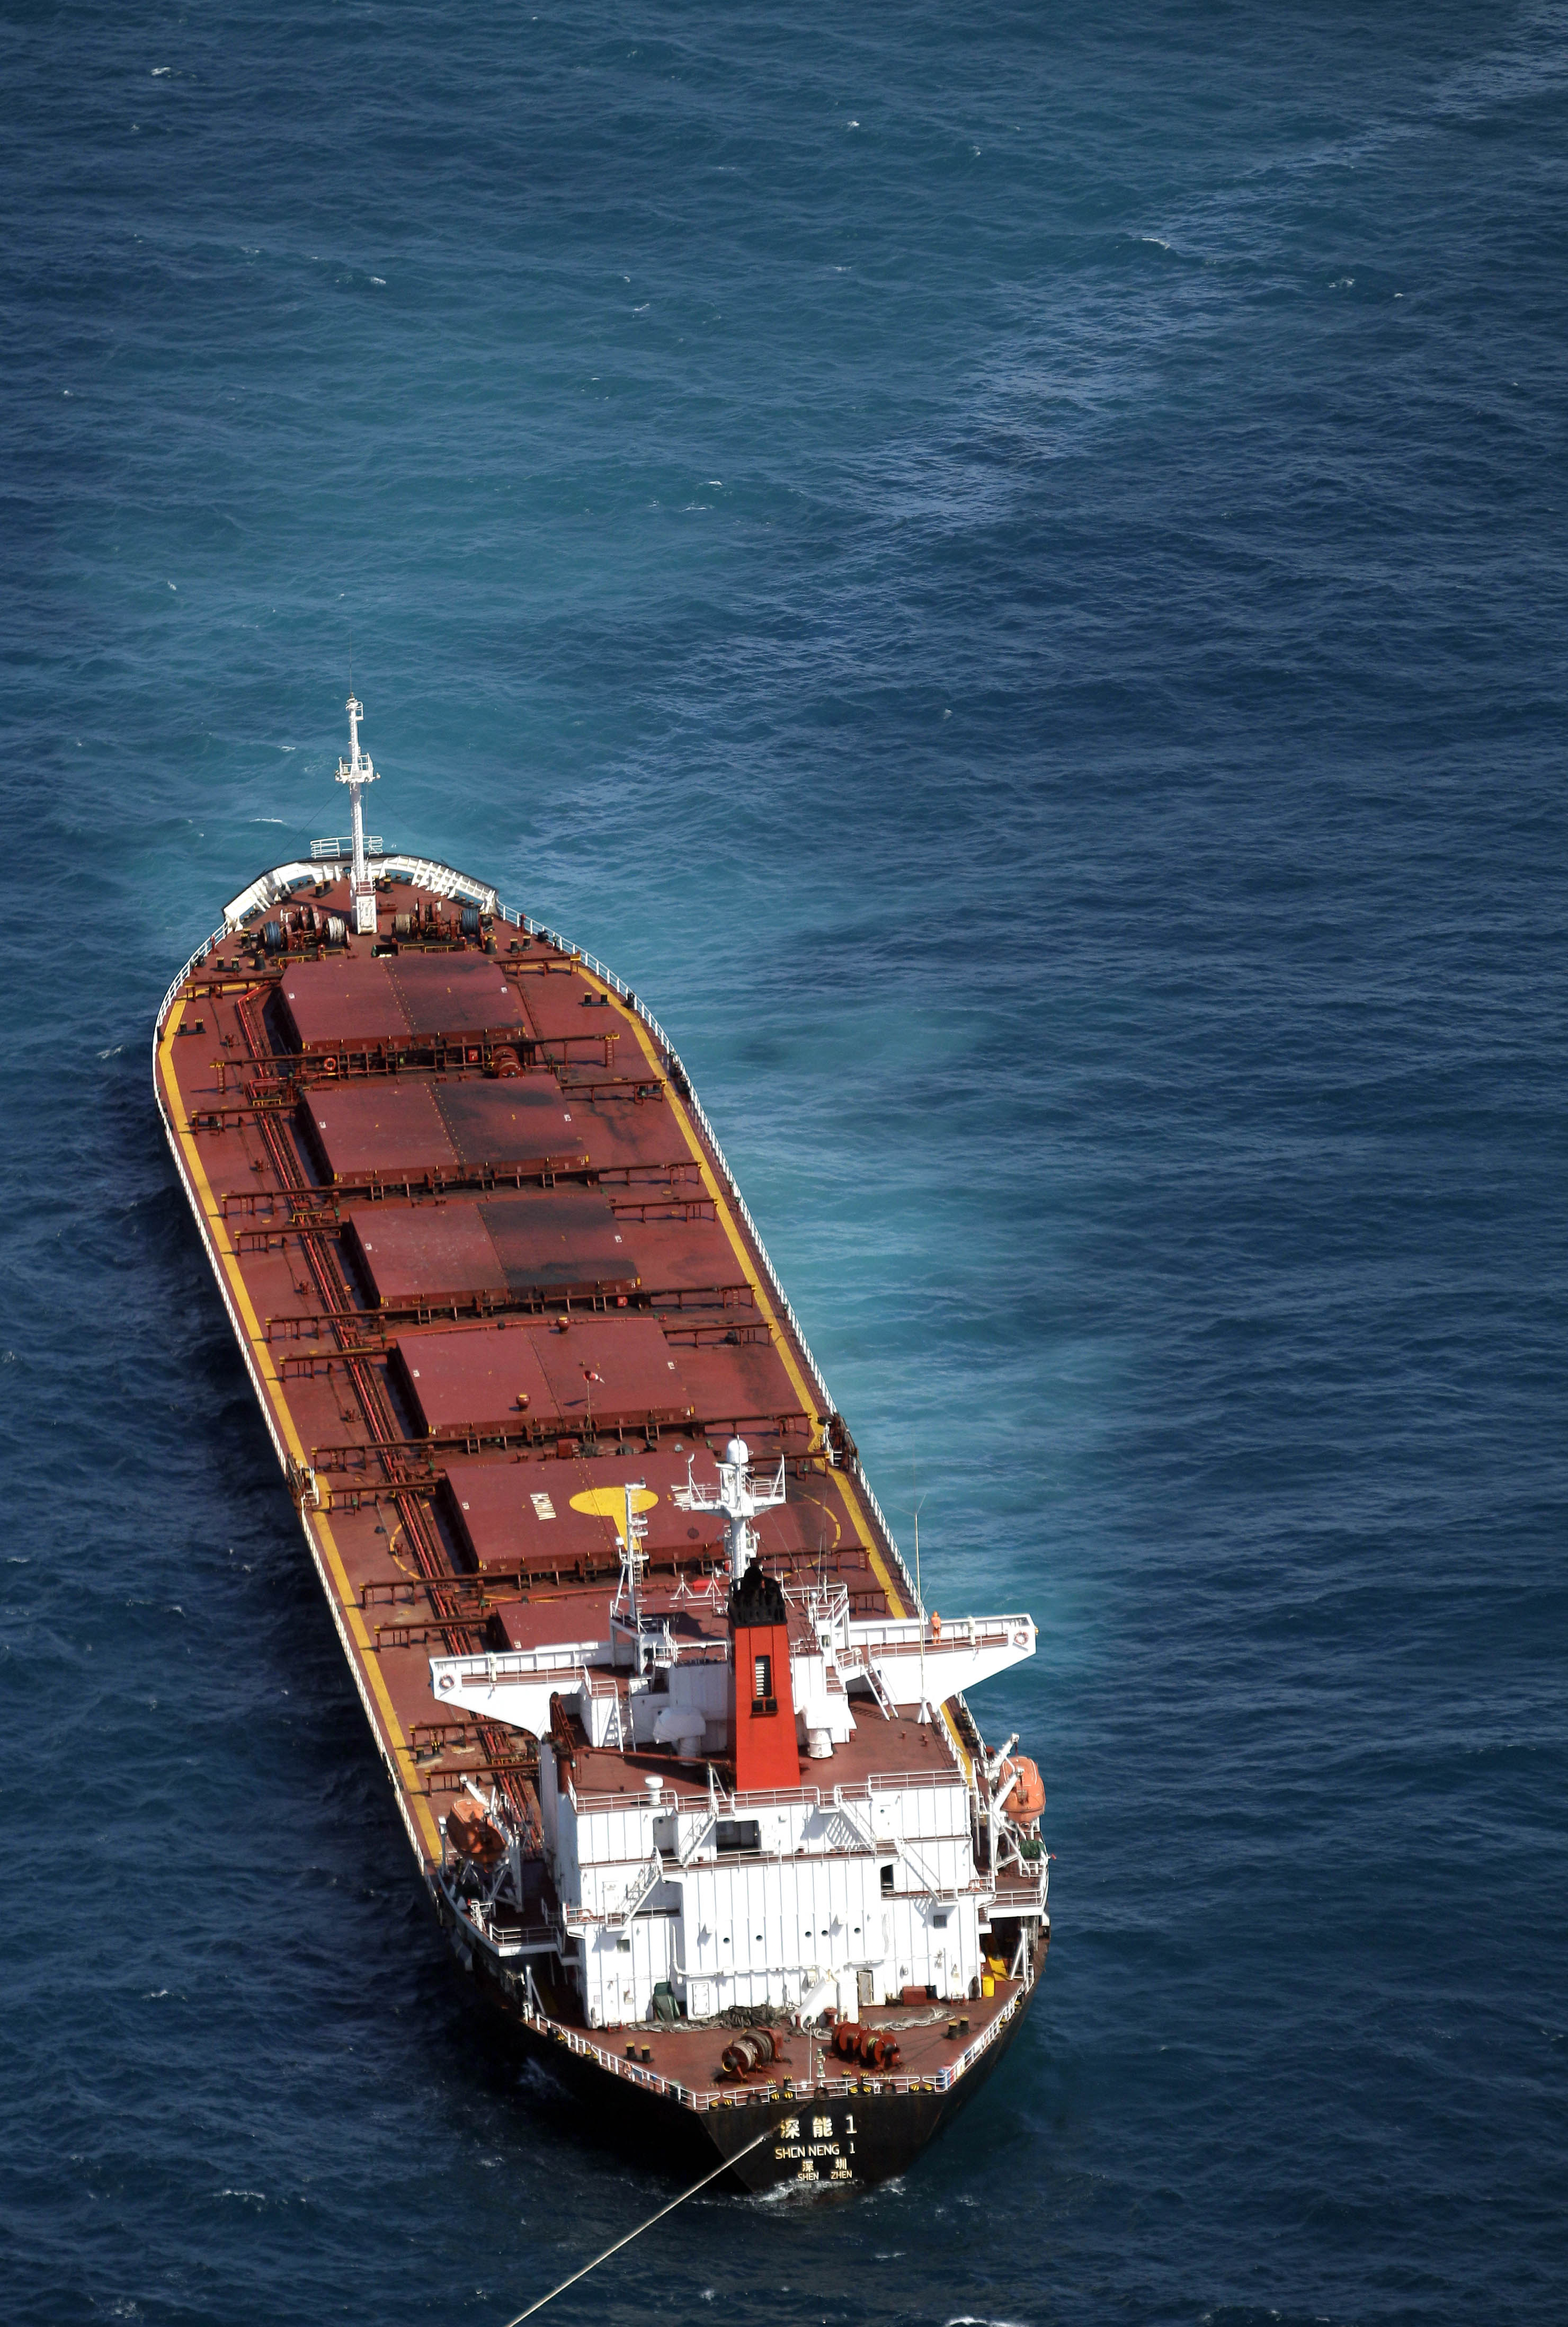 A ribbon of oil snakes away on the surface from the Chinese-registered 230m-long bulk coal carrier Shen Neng 1, off the coast of Rockhampton, Australi...